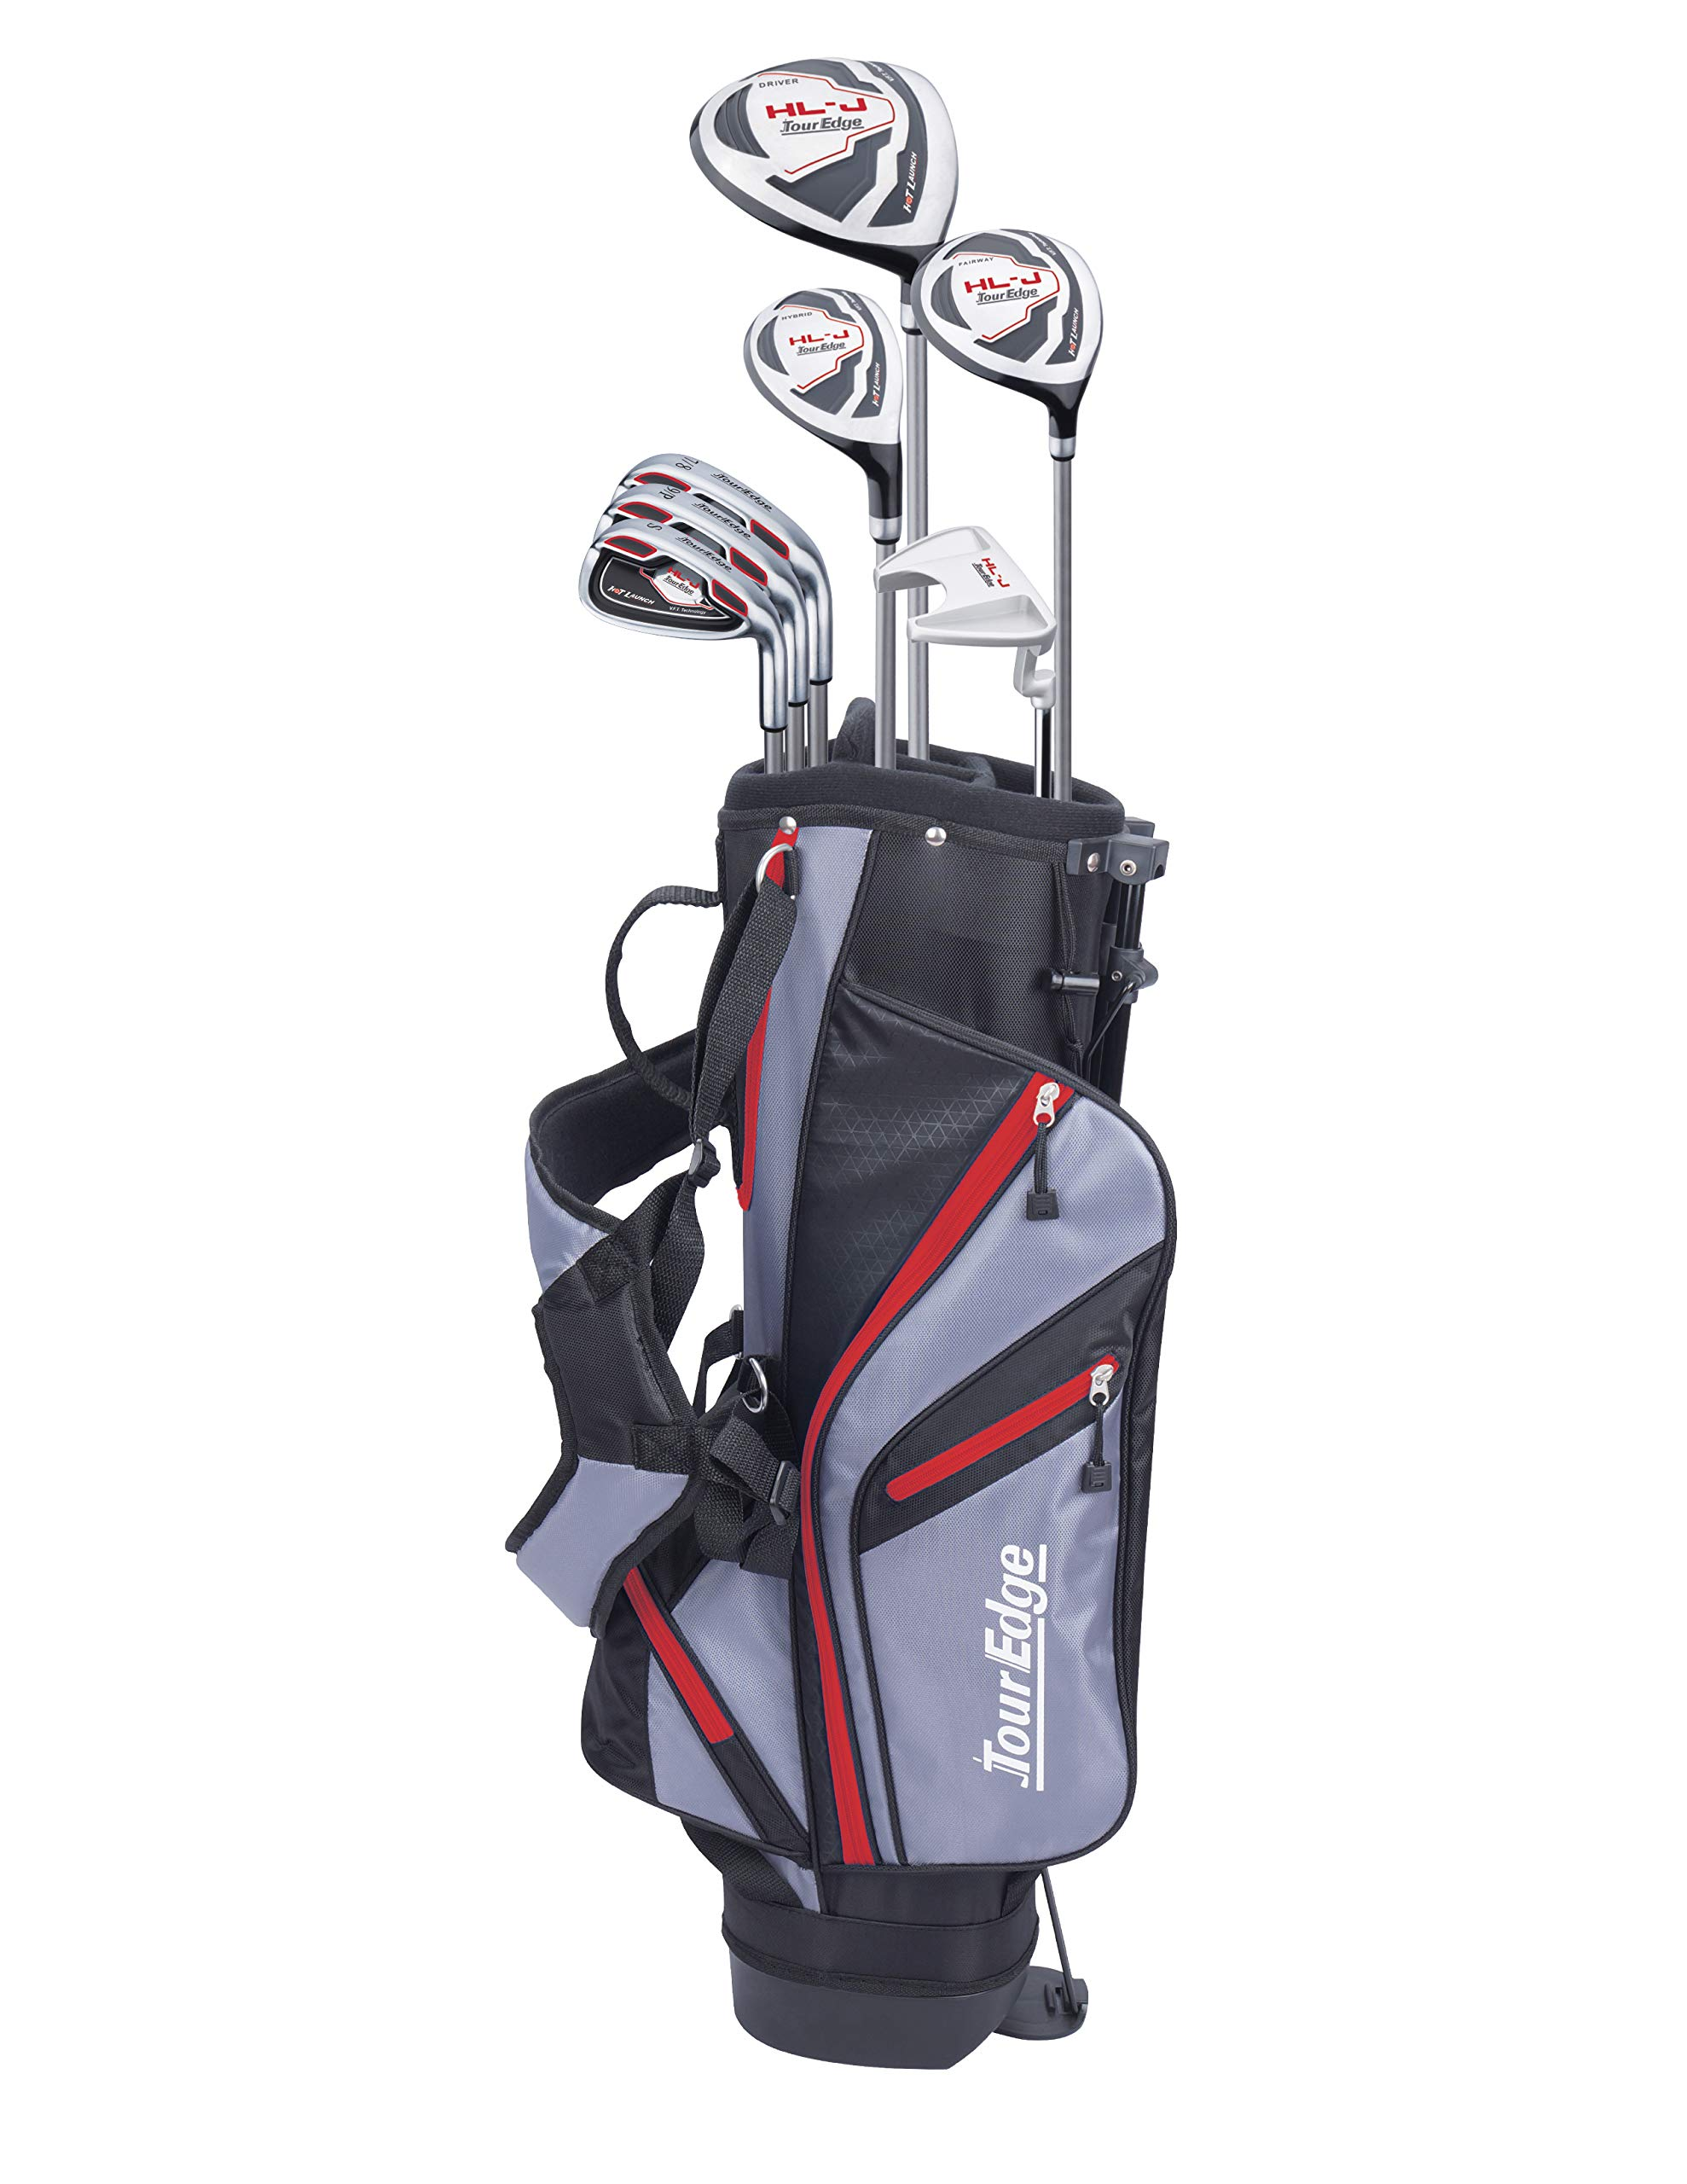 Tour Edge HL-J Junior Complete Golf Set with Bag (Right Hand, Graphite, 1 Putter, 3 Irons, 1 Hybrid, 1 Fairway, 1 Driver 9-12) Red by Tour Edge (Image #1)